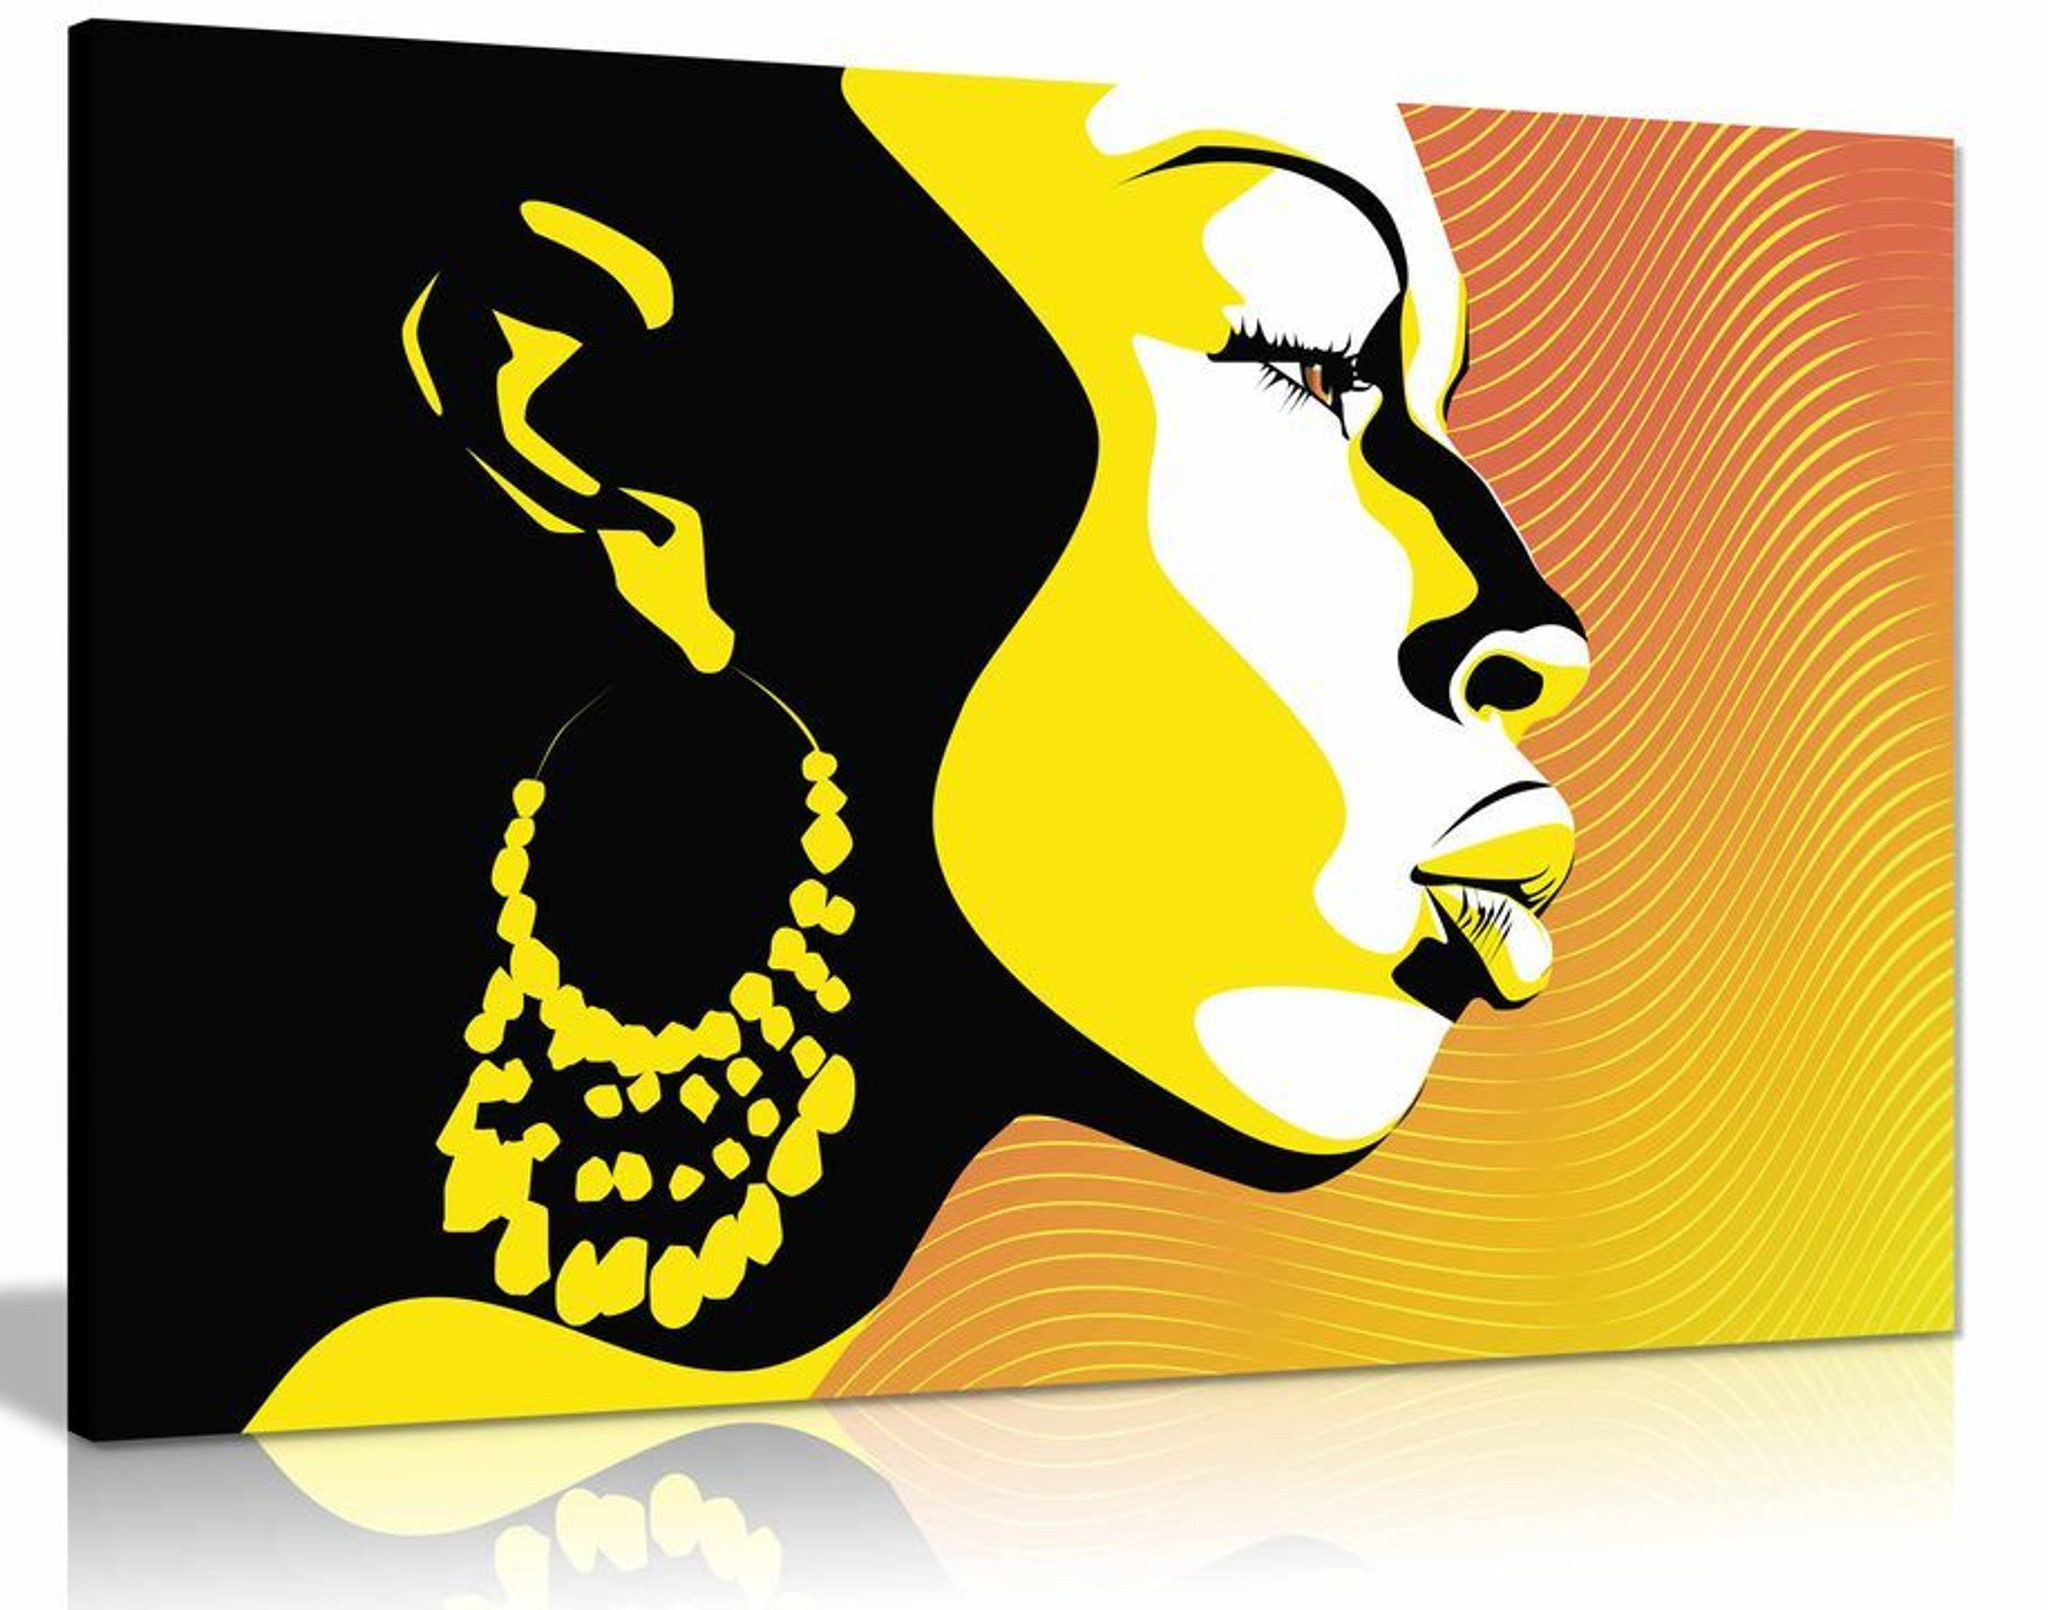 Modern African Art Silhouette Yellow Black Canvas Wall Art Picture Print Home Decor - Panther Print